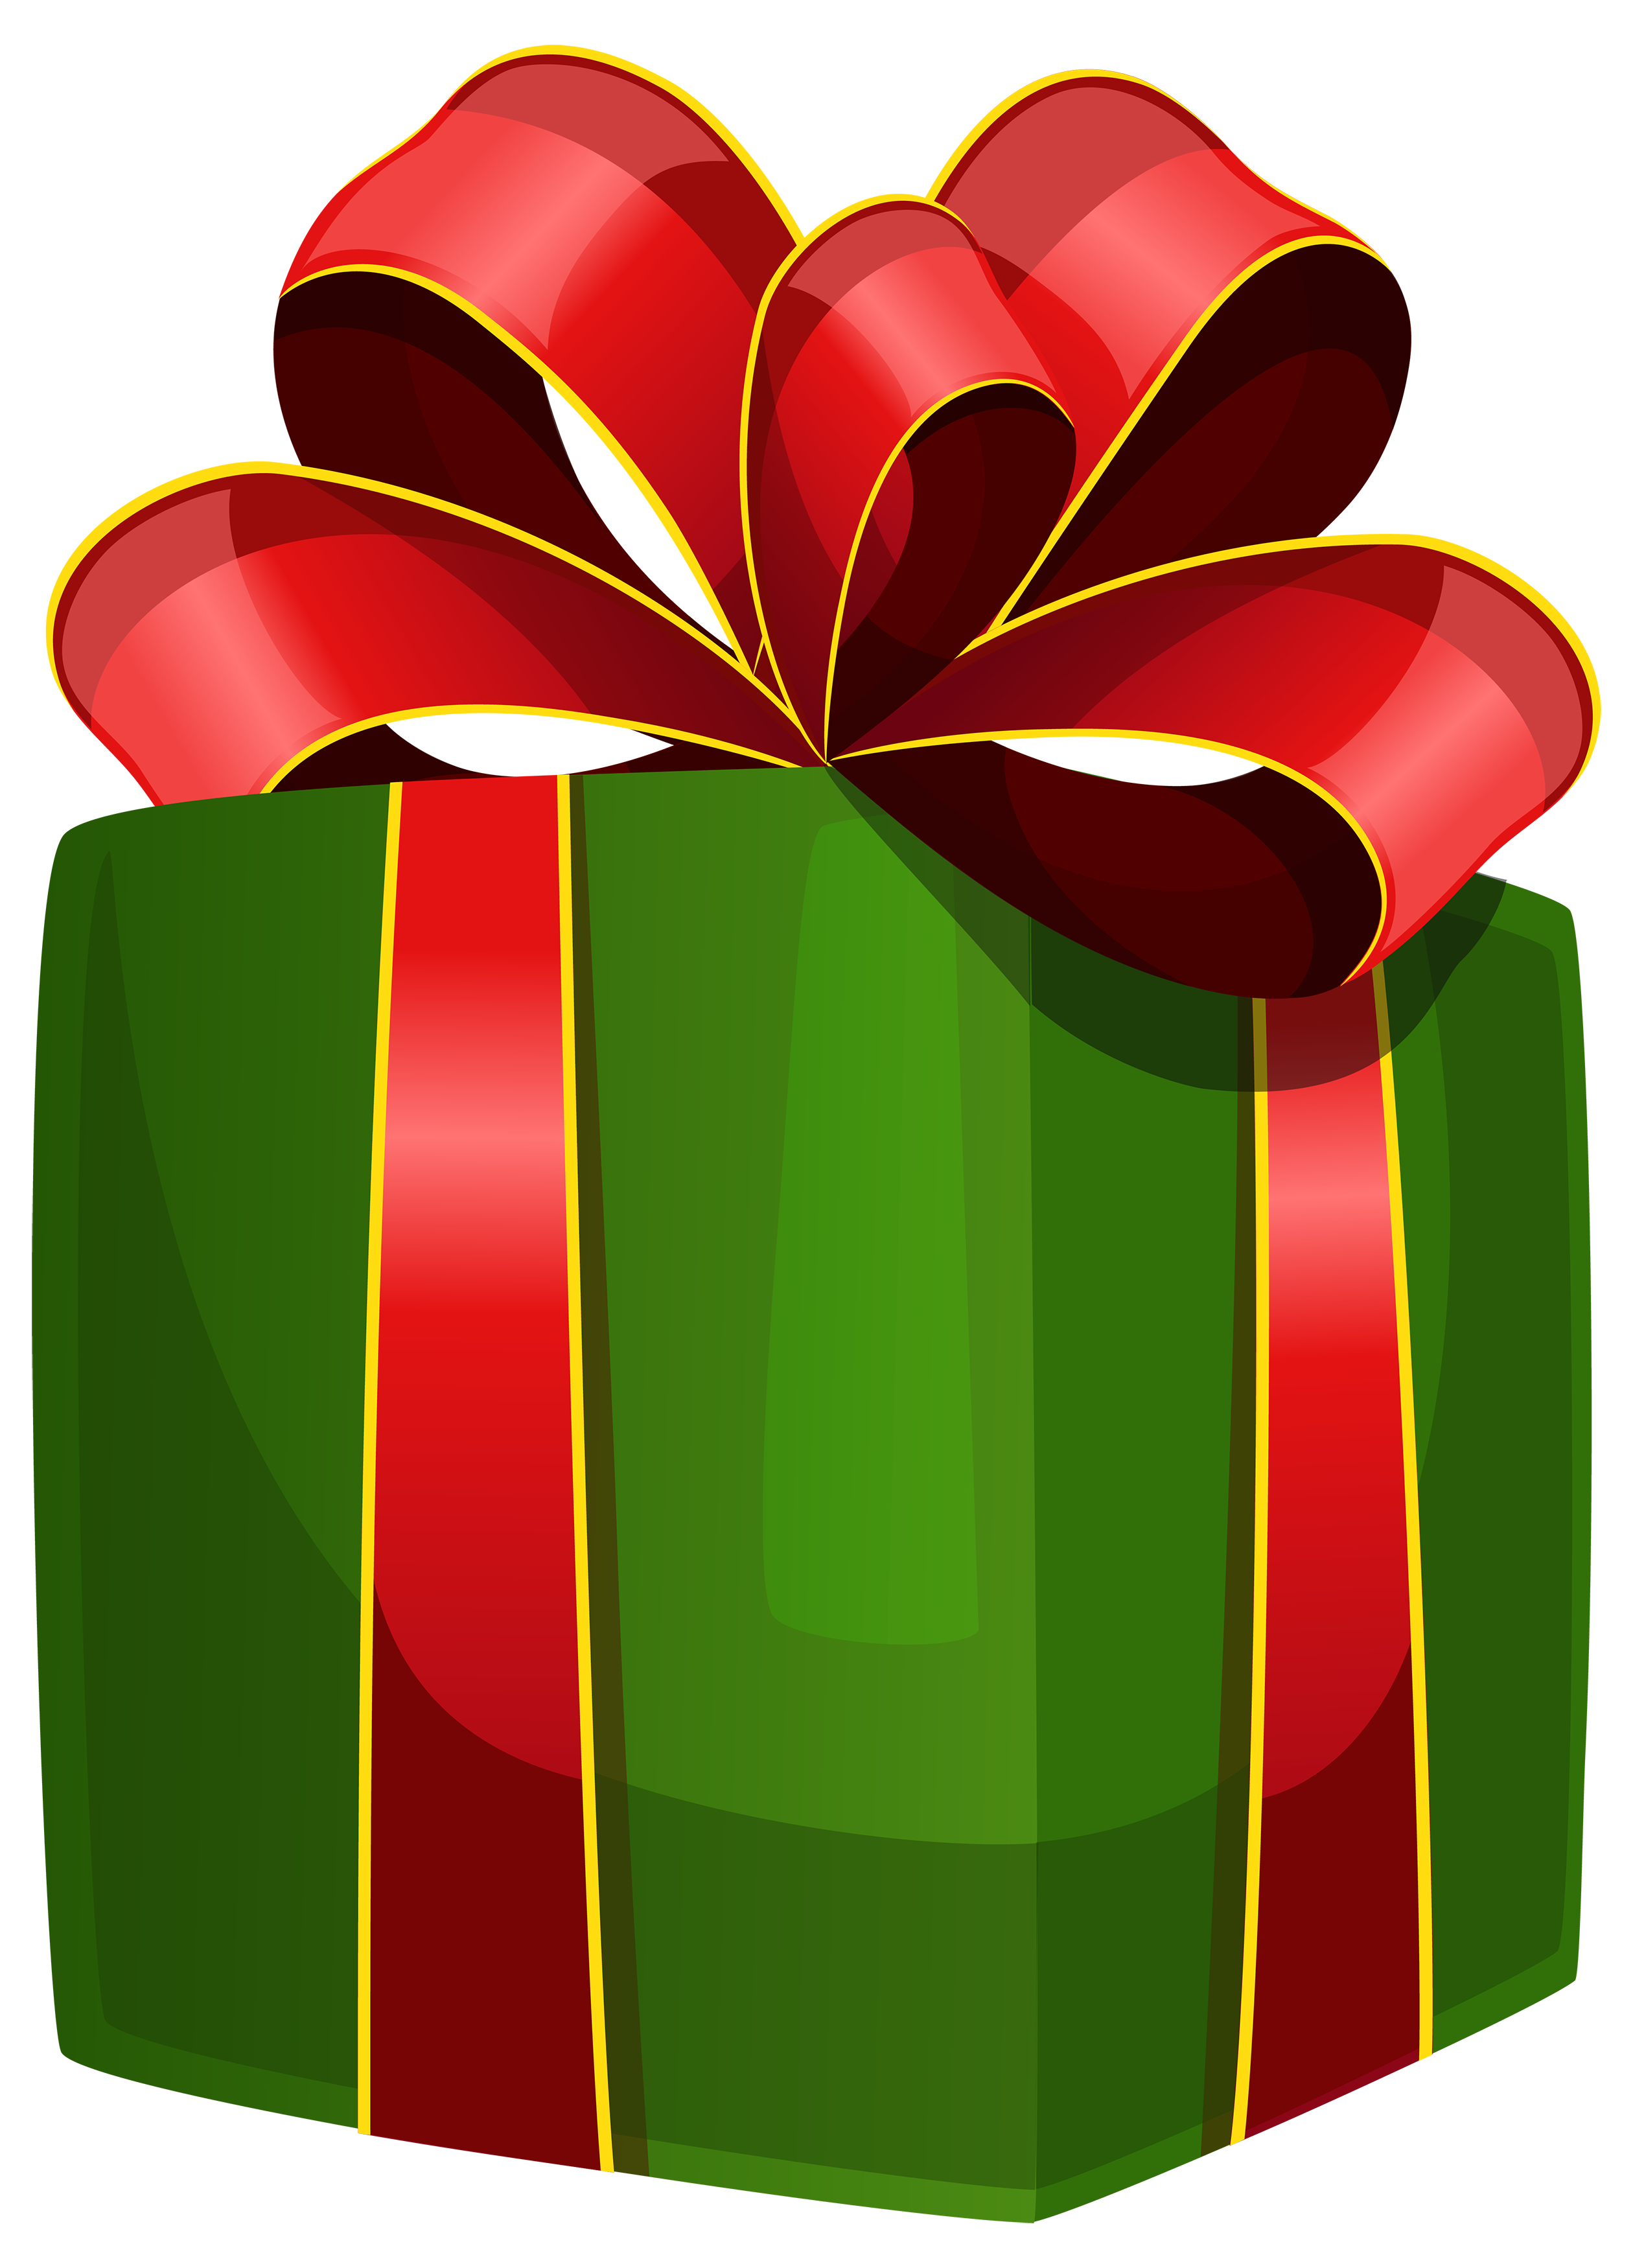 Green box best web. Clipart png gift